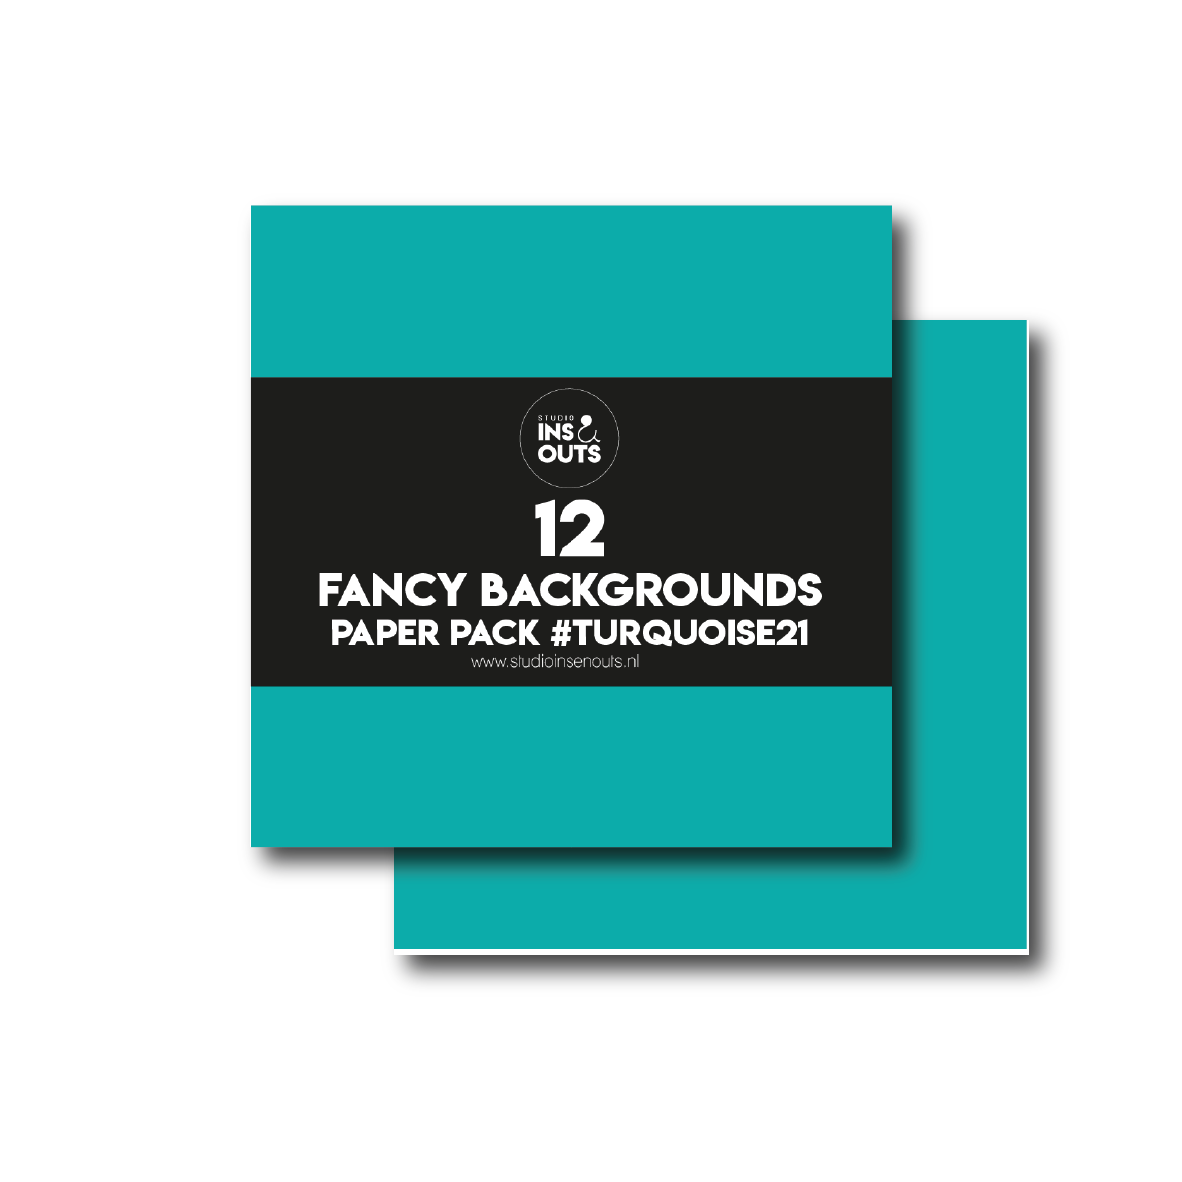 Paper Pack TURQUOISE '21